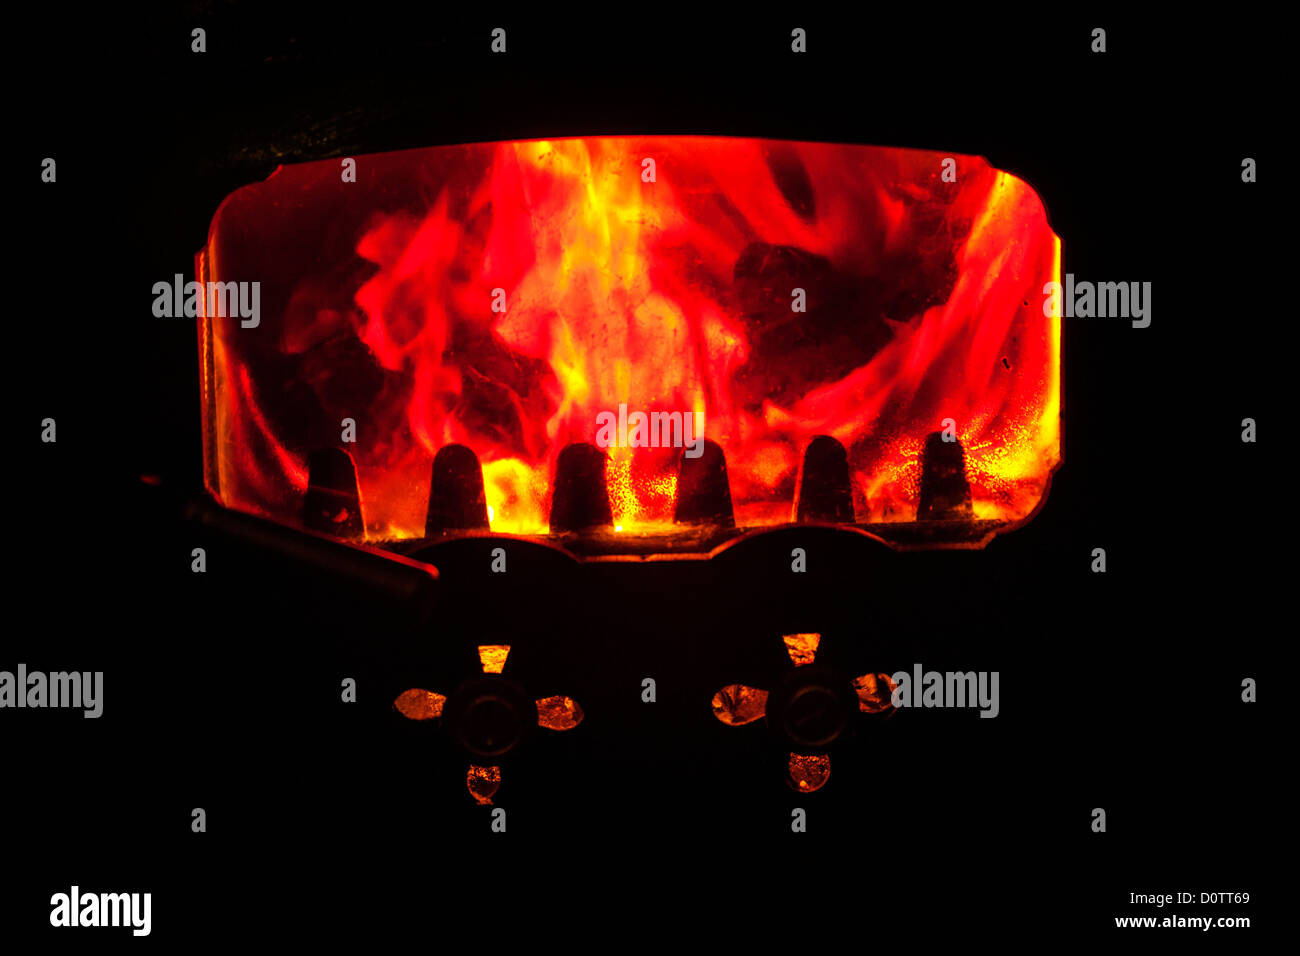 Fire in a chimney fuego chimenea - Stock Image